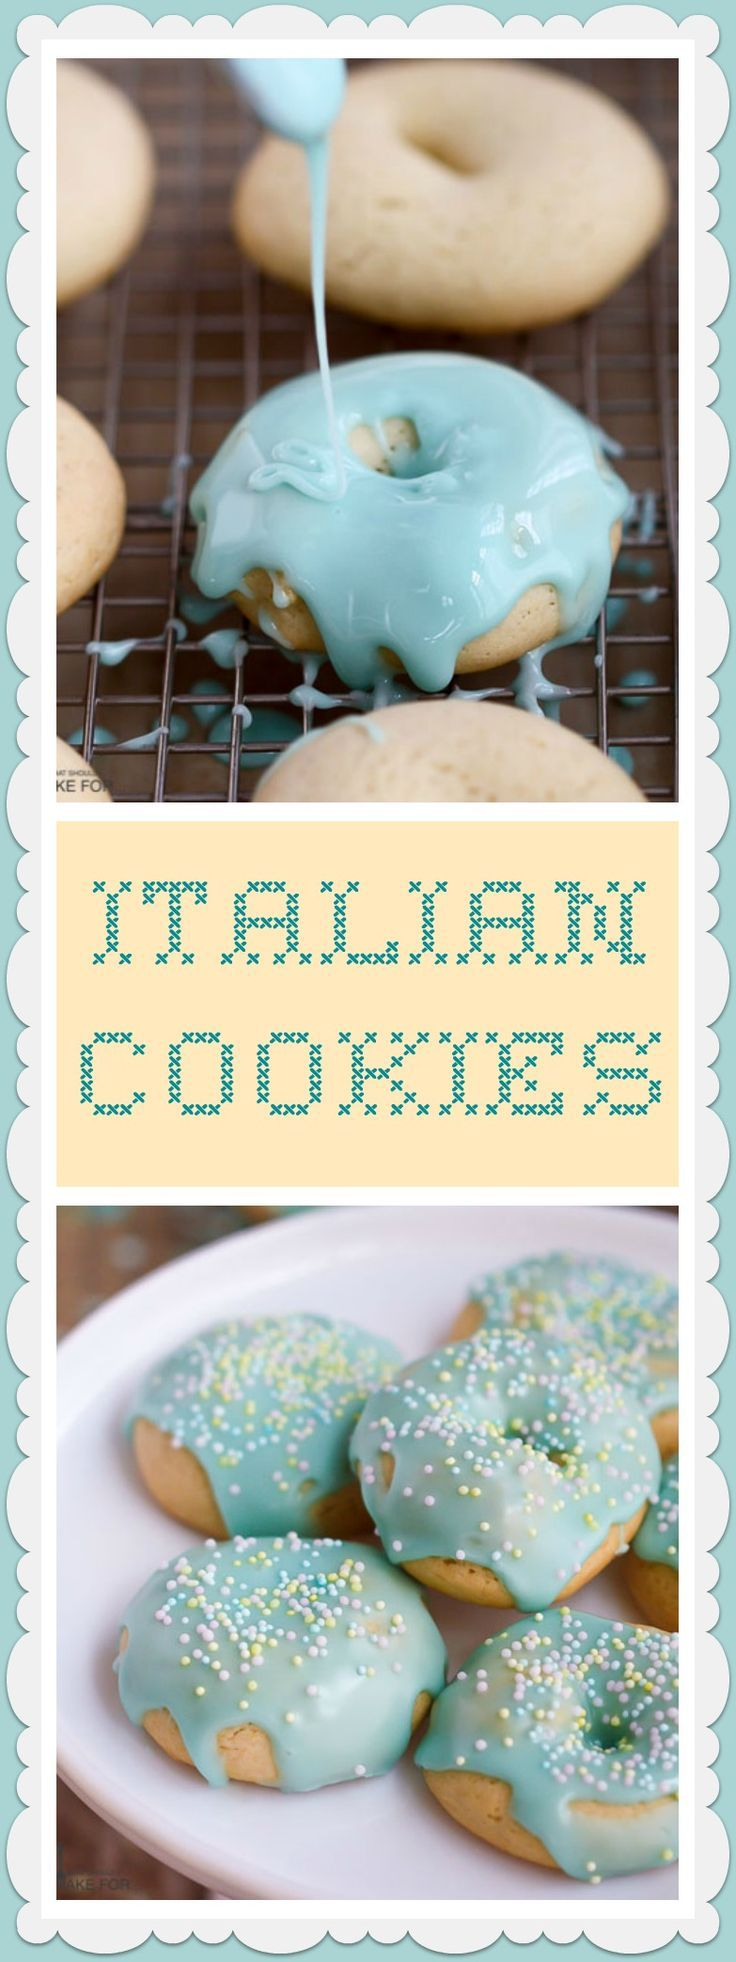 Italian cookies have been a family favorite for many years and look so sweet all dressed up for Easter.